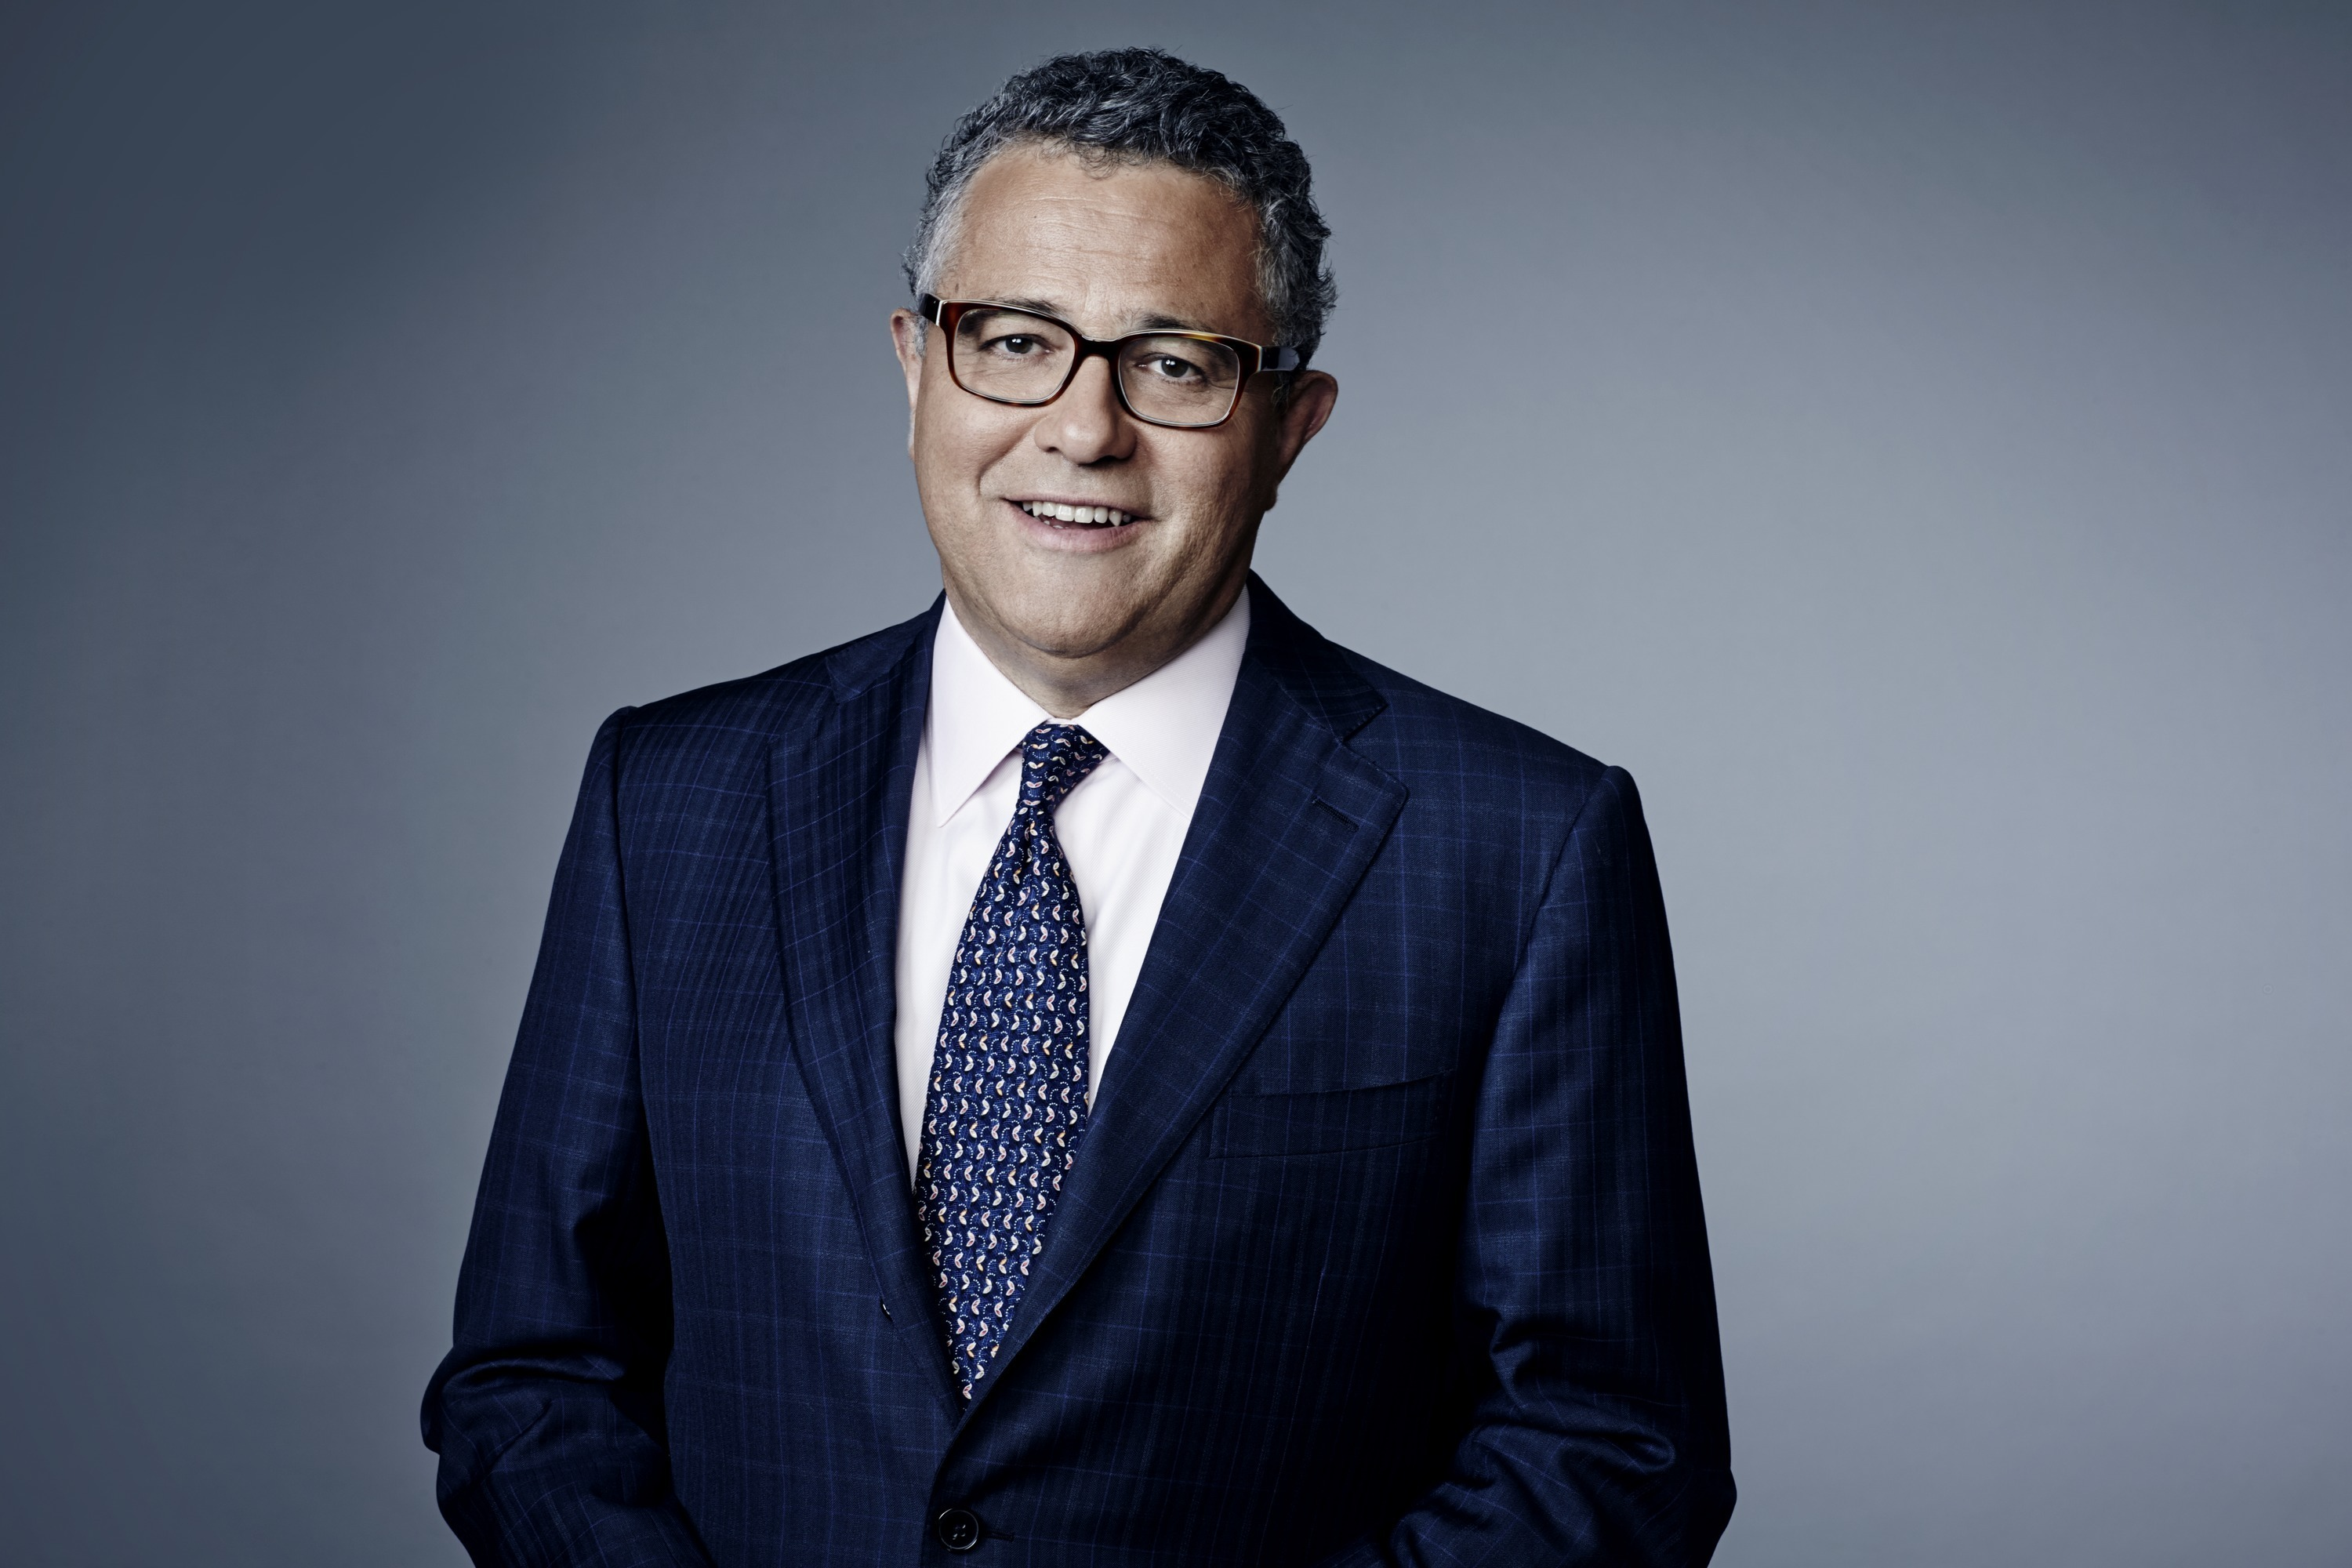 See Jeffrey Toobin, author of